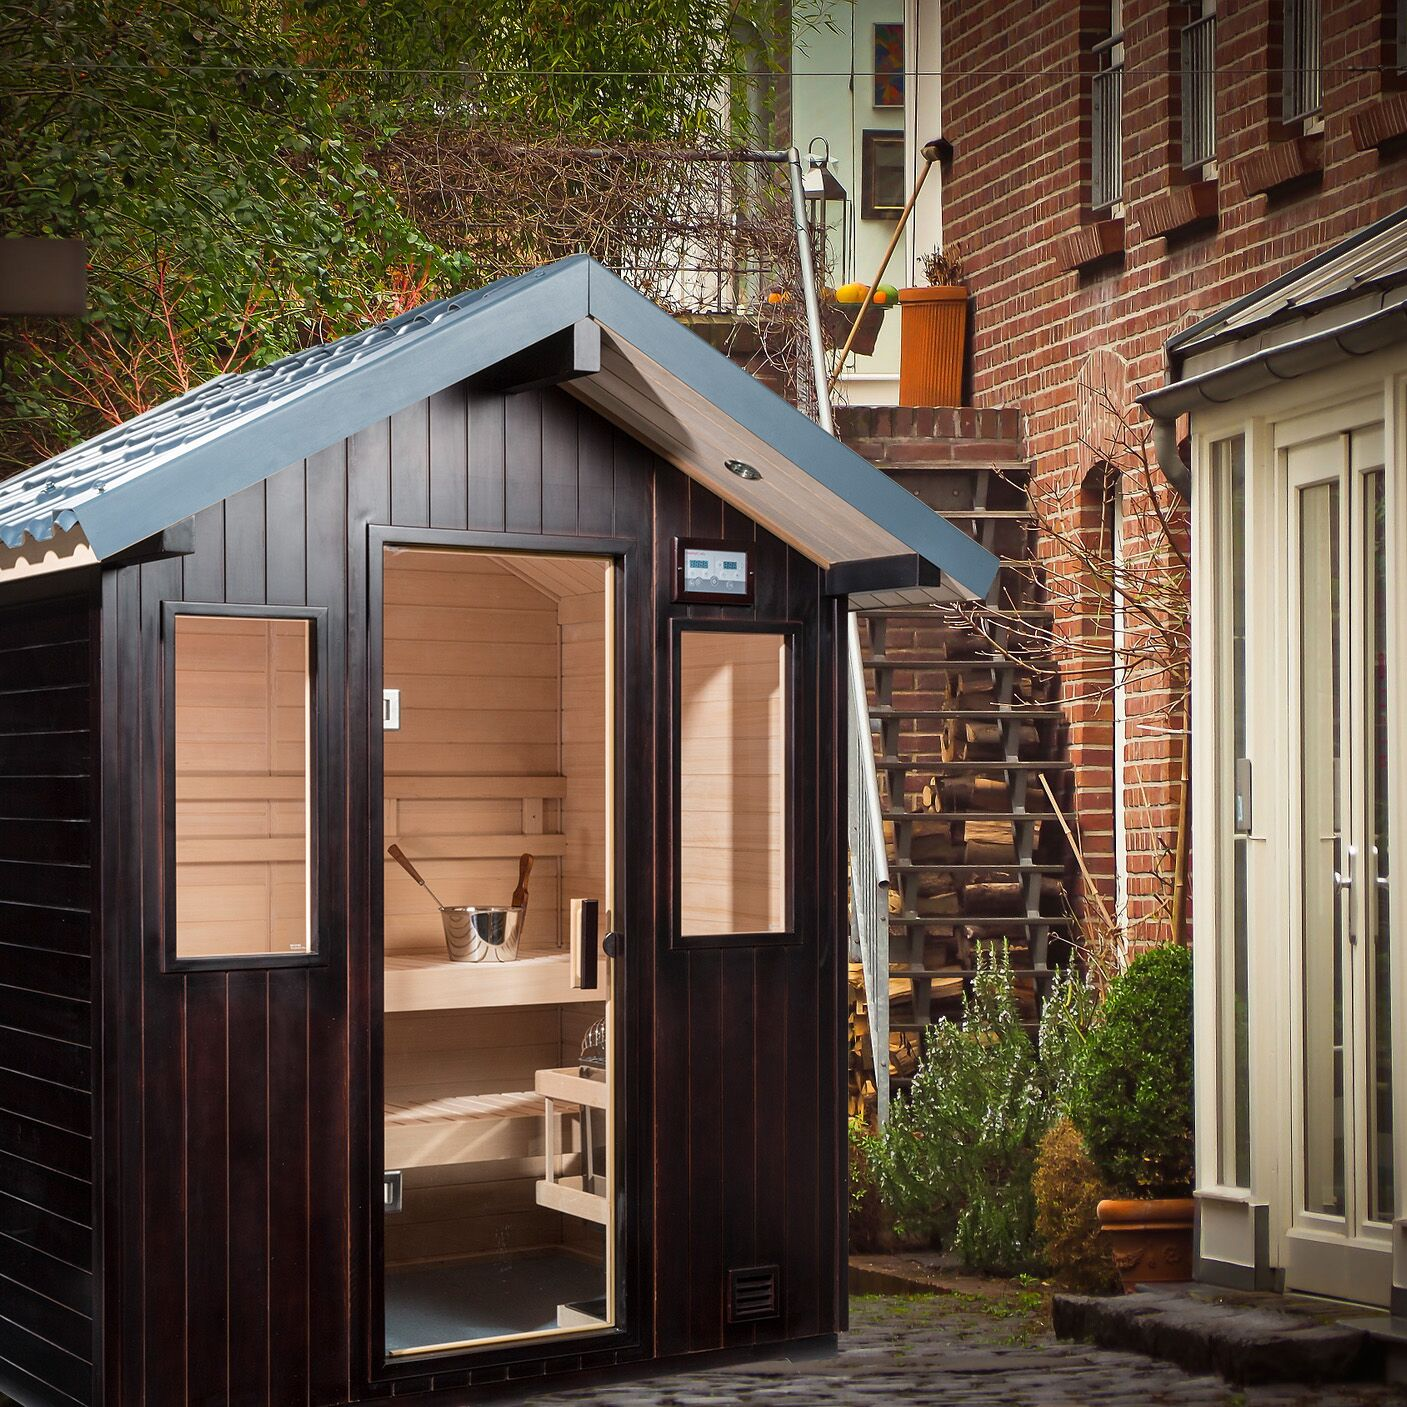 Terrace Outdoor Sauna Family Image